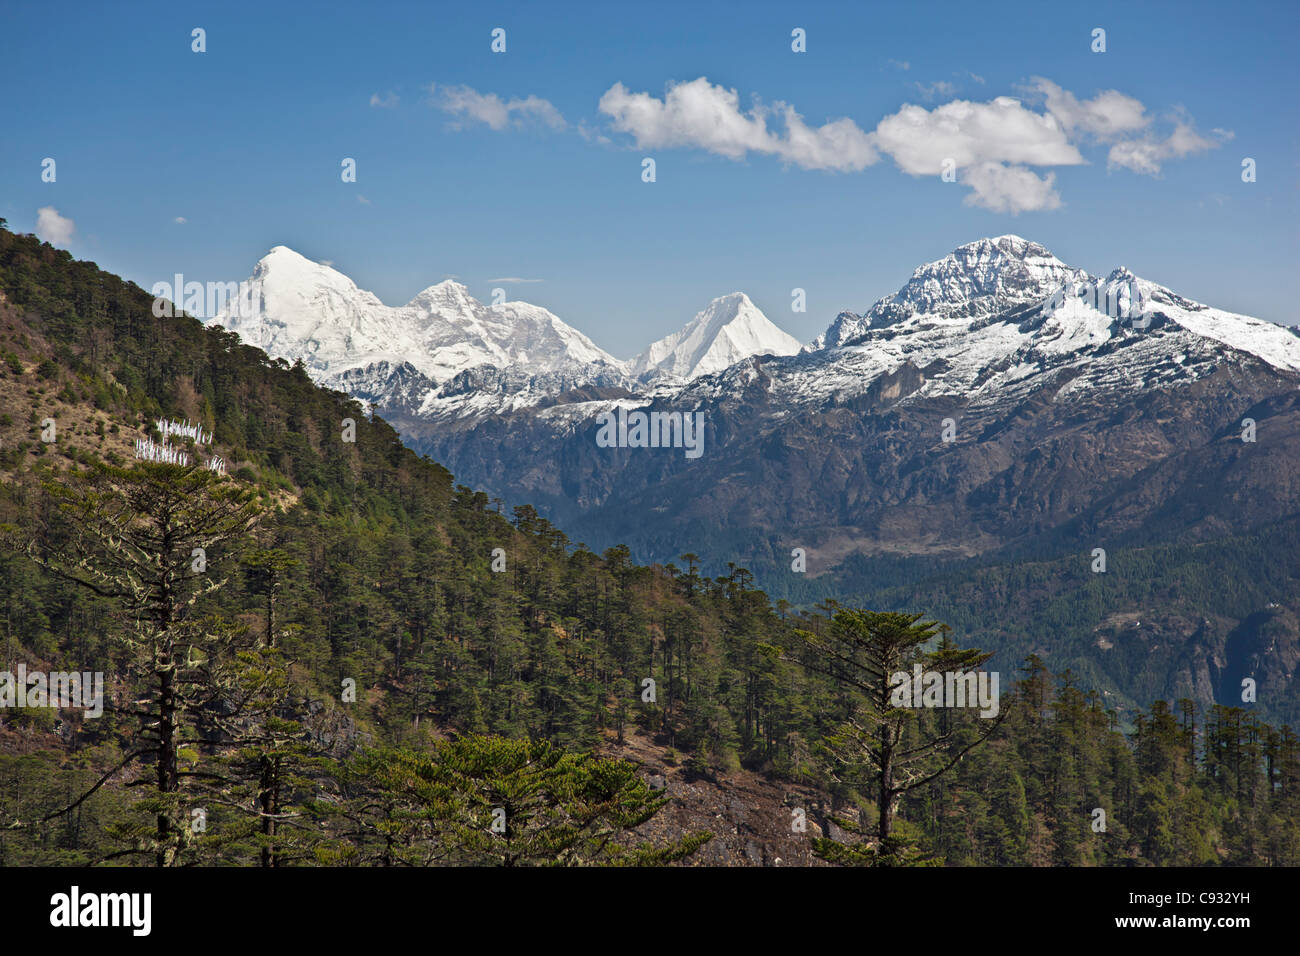 A superb view of snow-capped mountains from the Cheli La Pass, Bhutans highest motorable road. - Stock Image